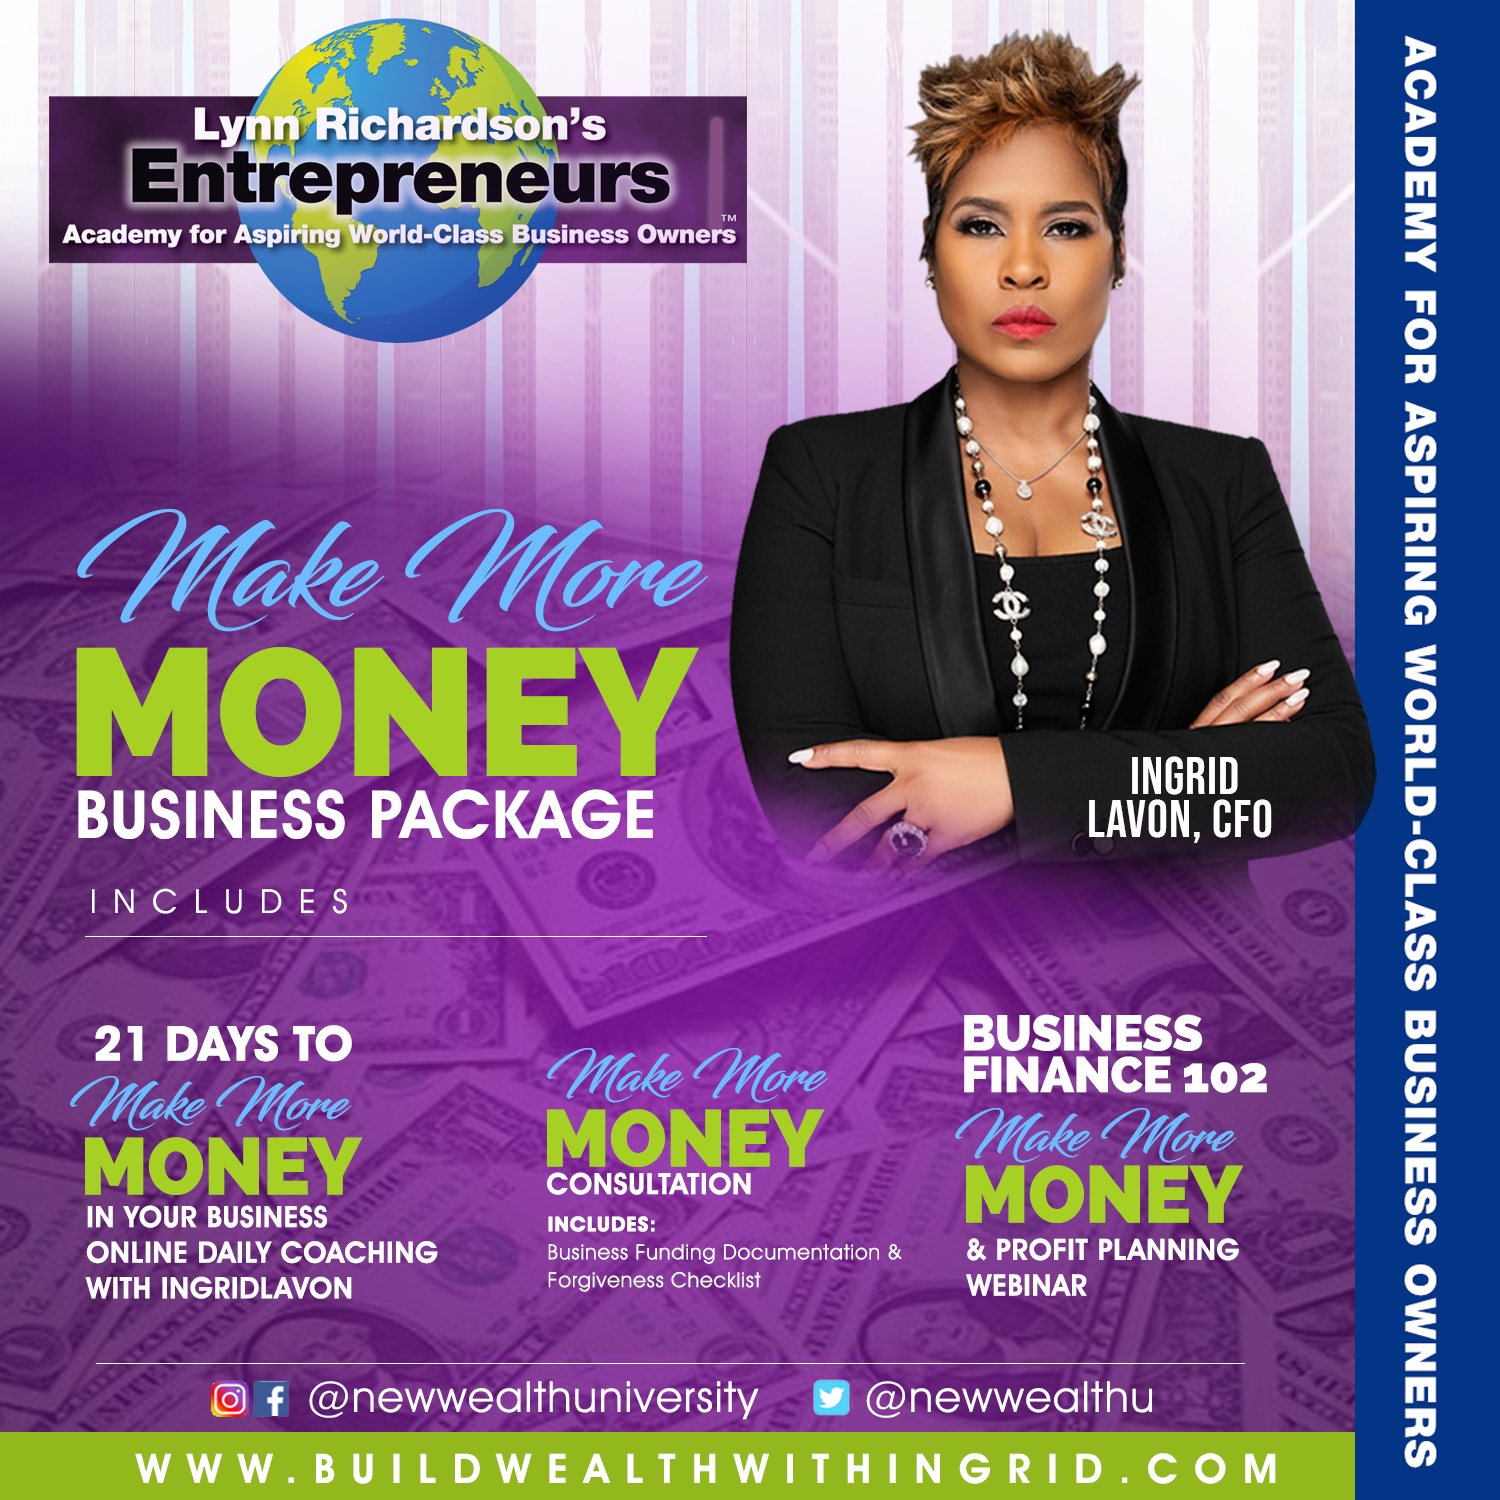 Make More Money All Inclusive Business Package